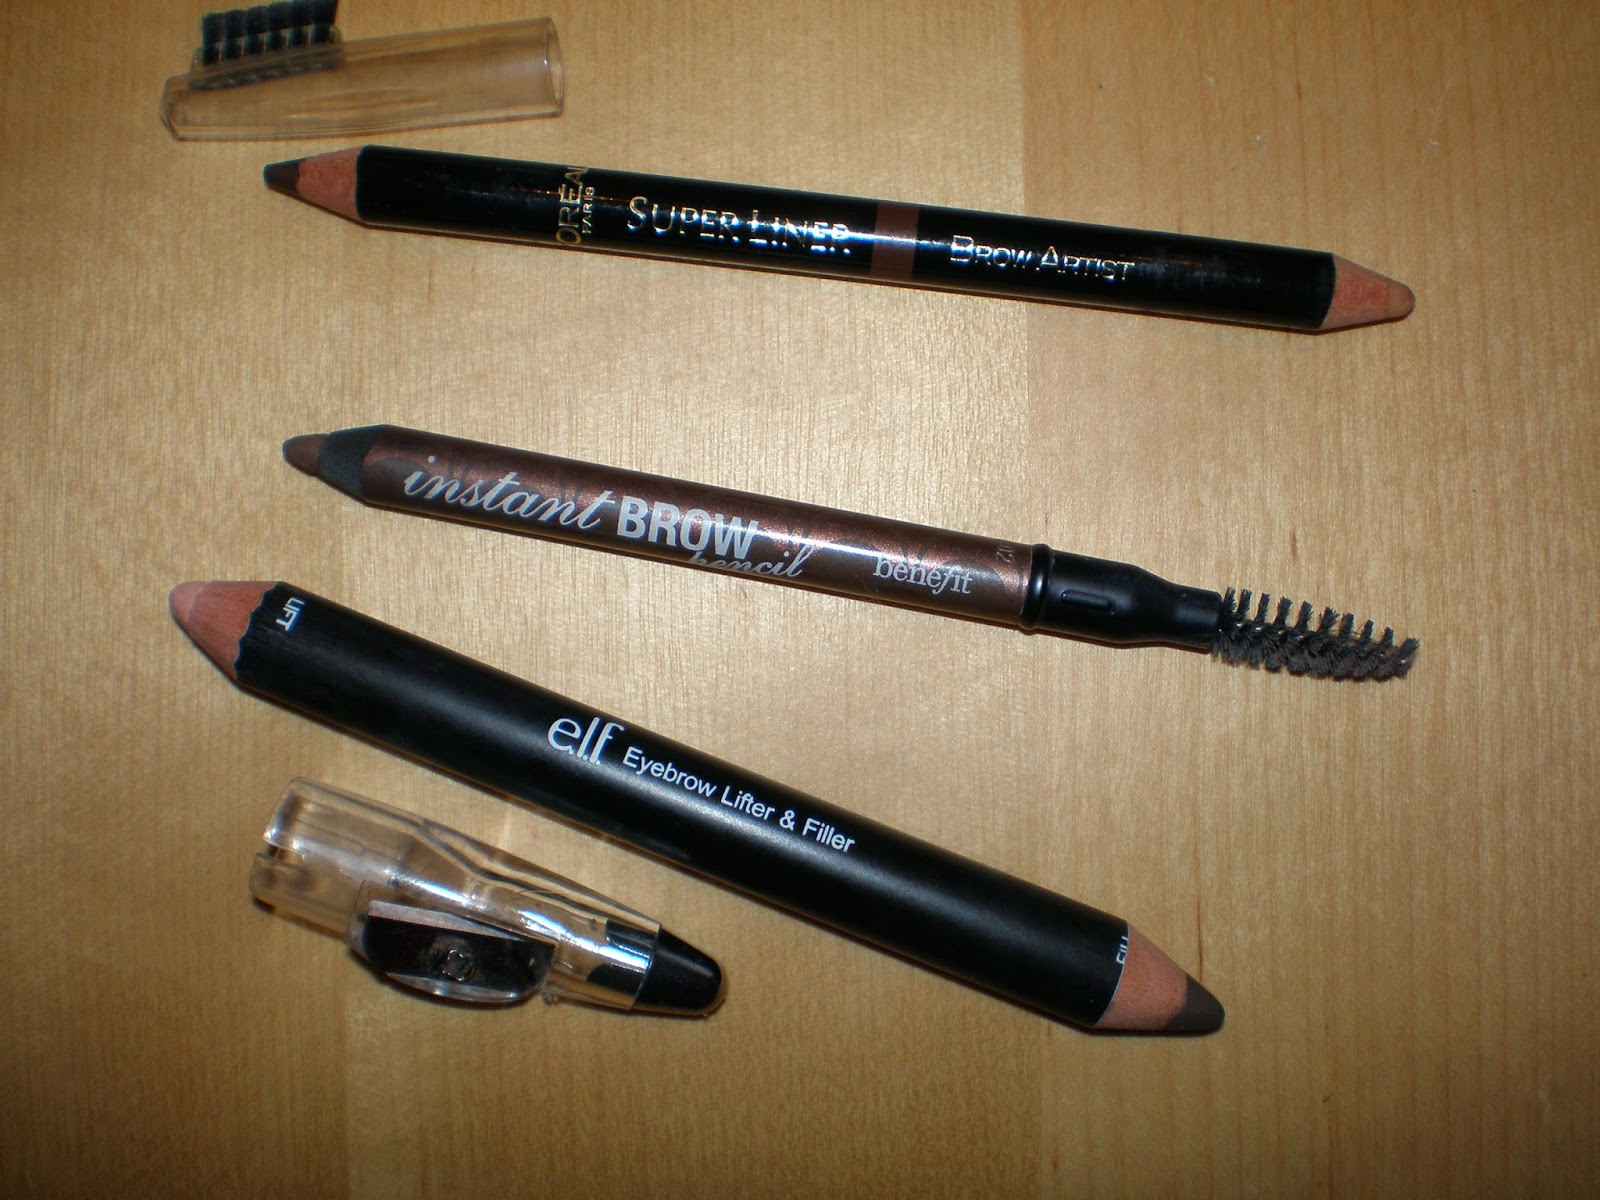 L'oreal Super Liner Brow Artist, Benefit cosmetics instant brow pencil and ELF Eyebrow Lifter & Filler